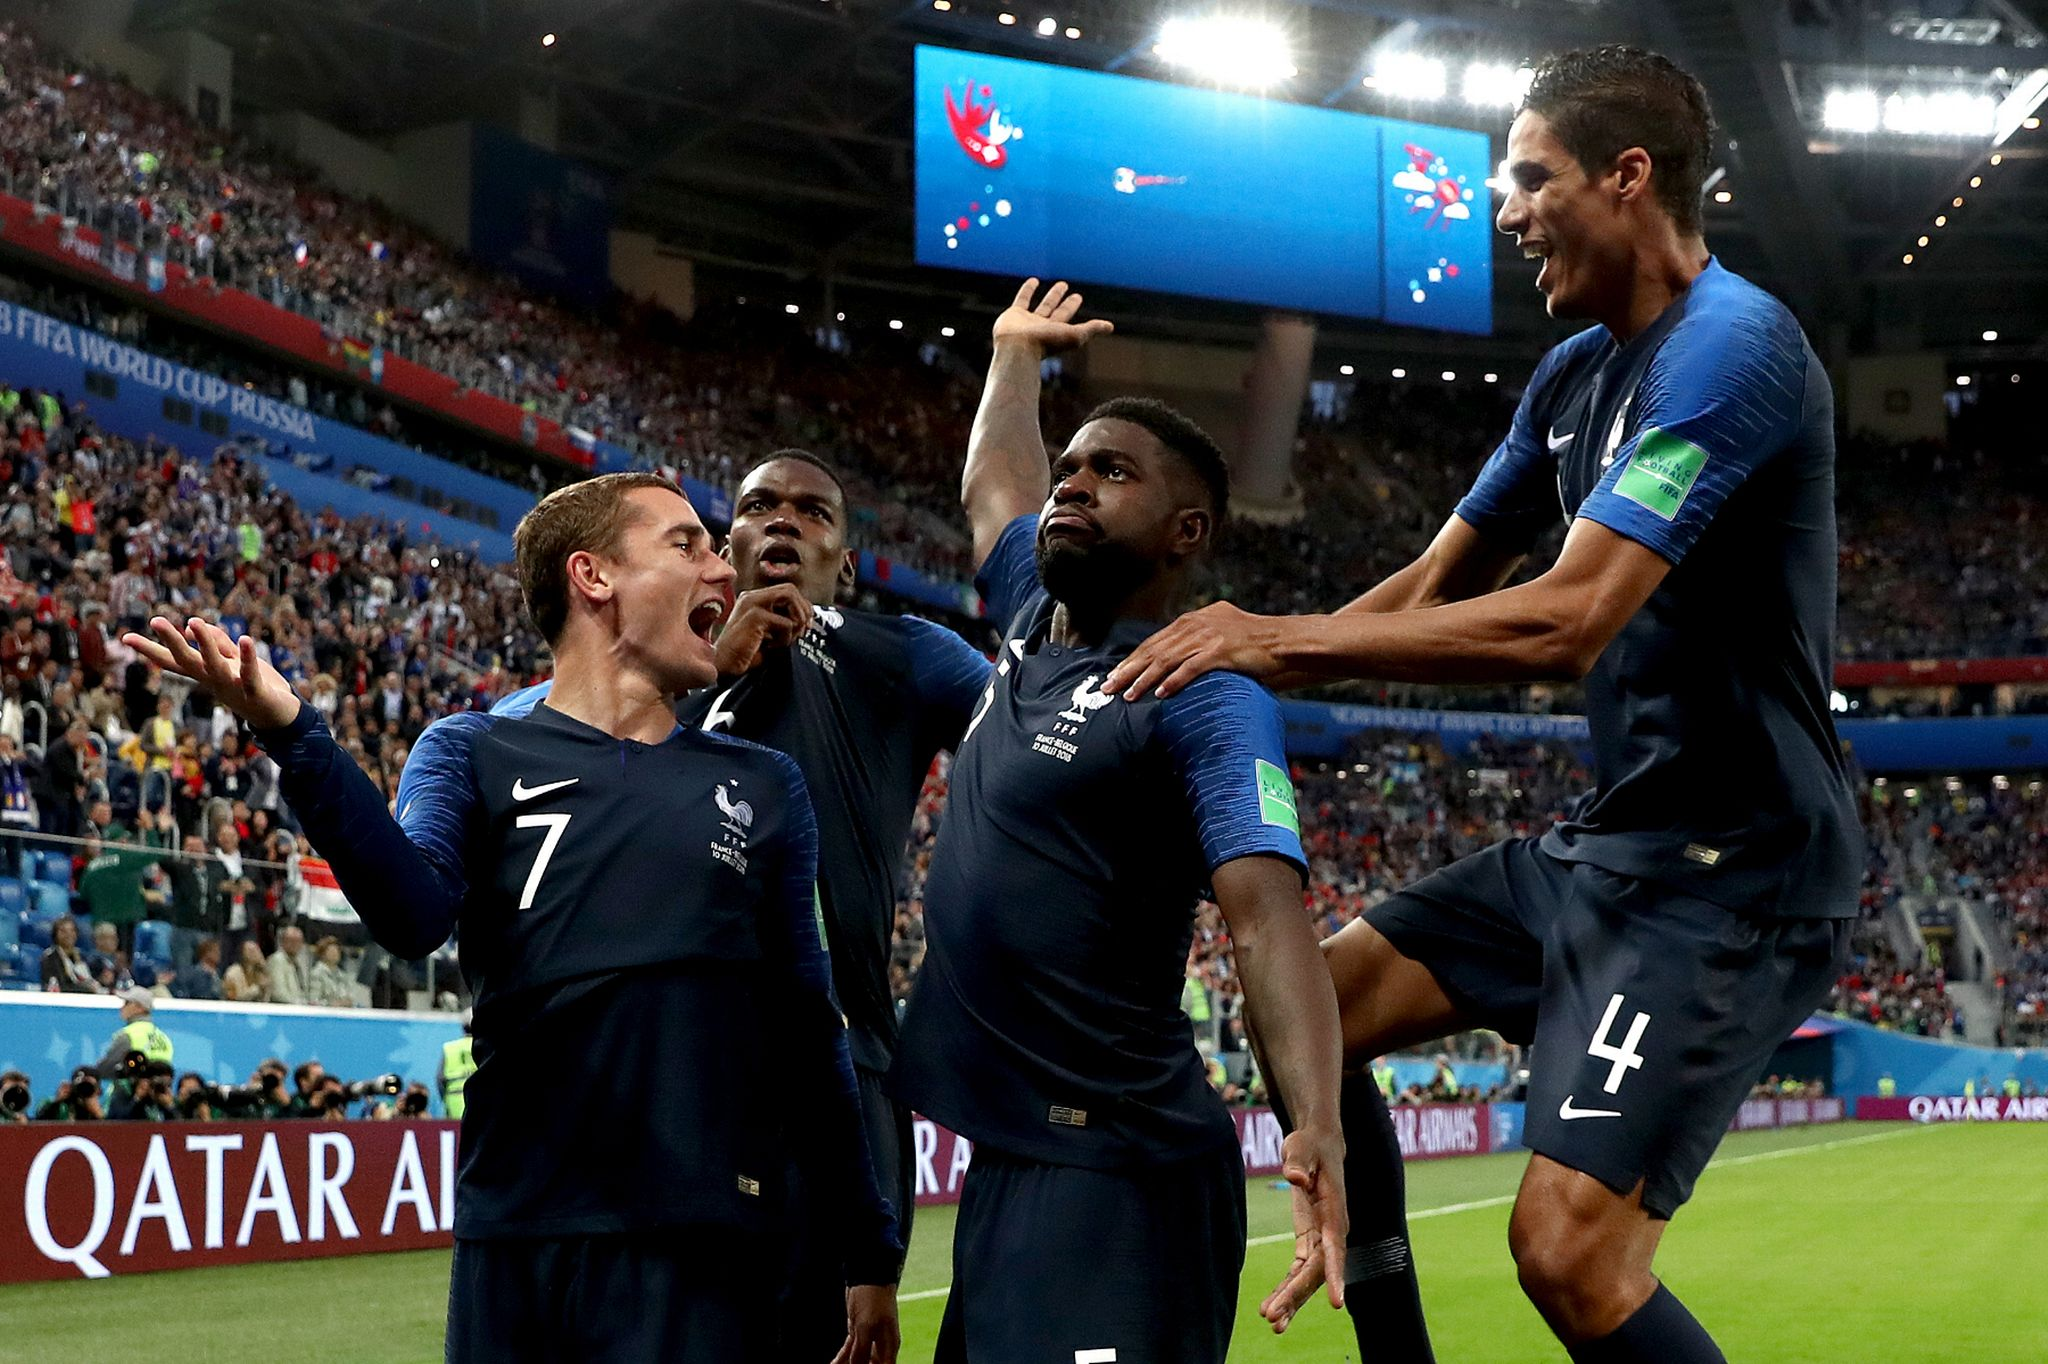 The eyes of France are on the Second World Cup trophy, Croatia is desperate for the best performance